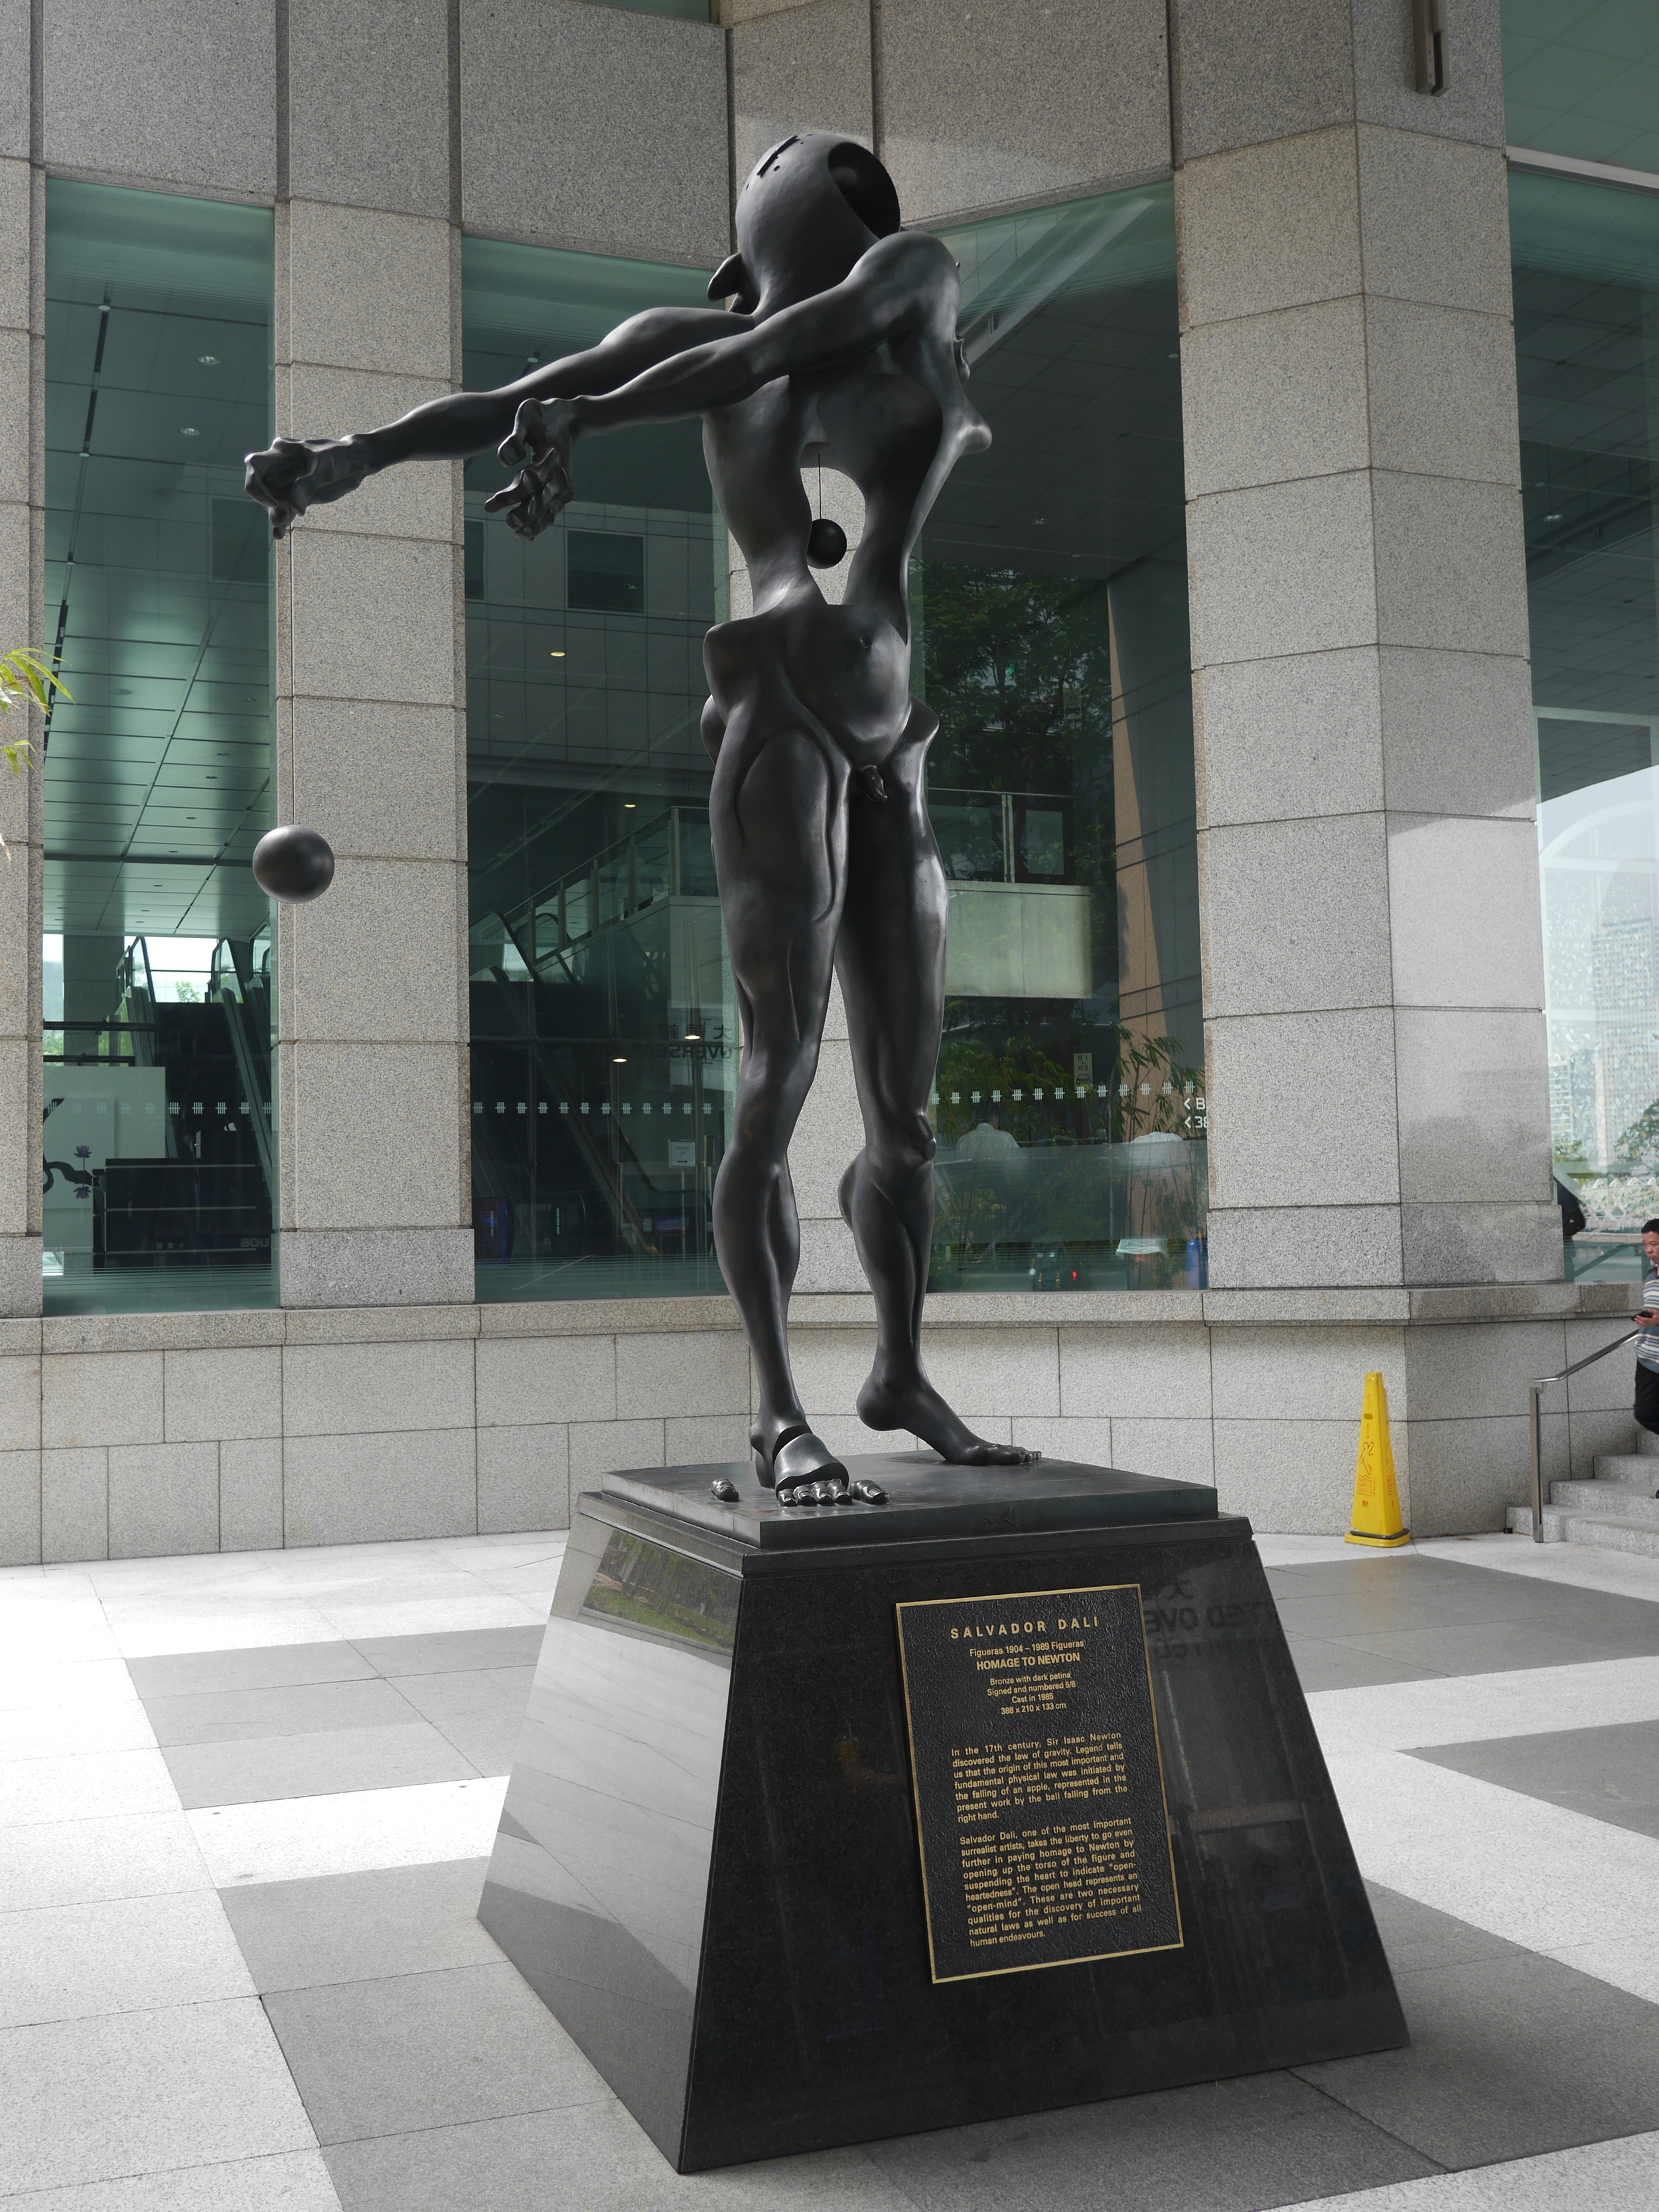 Dali's  Homage to Newton . Didn't even realize he did sculpture. Reminds me a bit of  Gargallo .